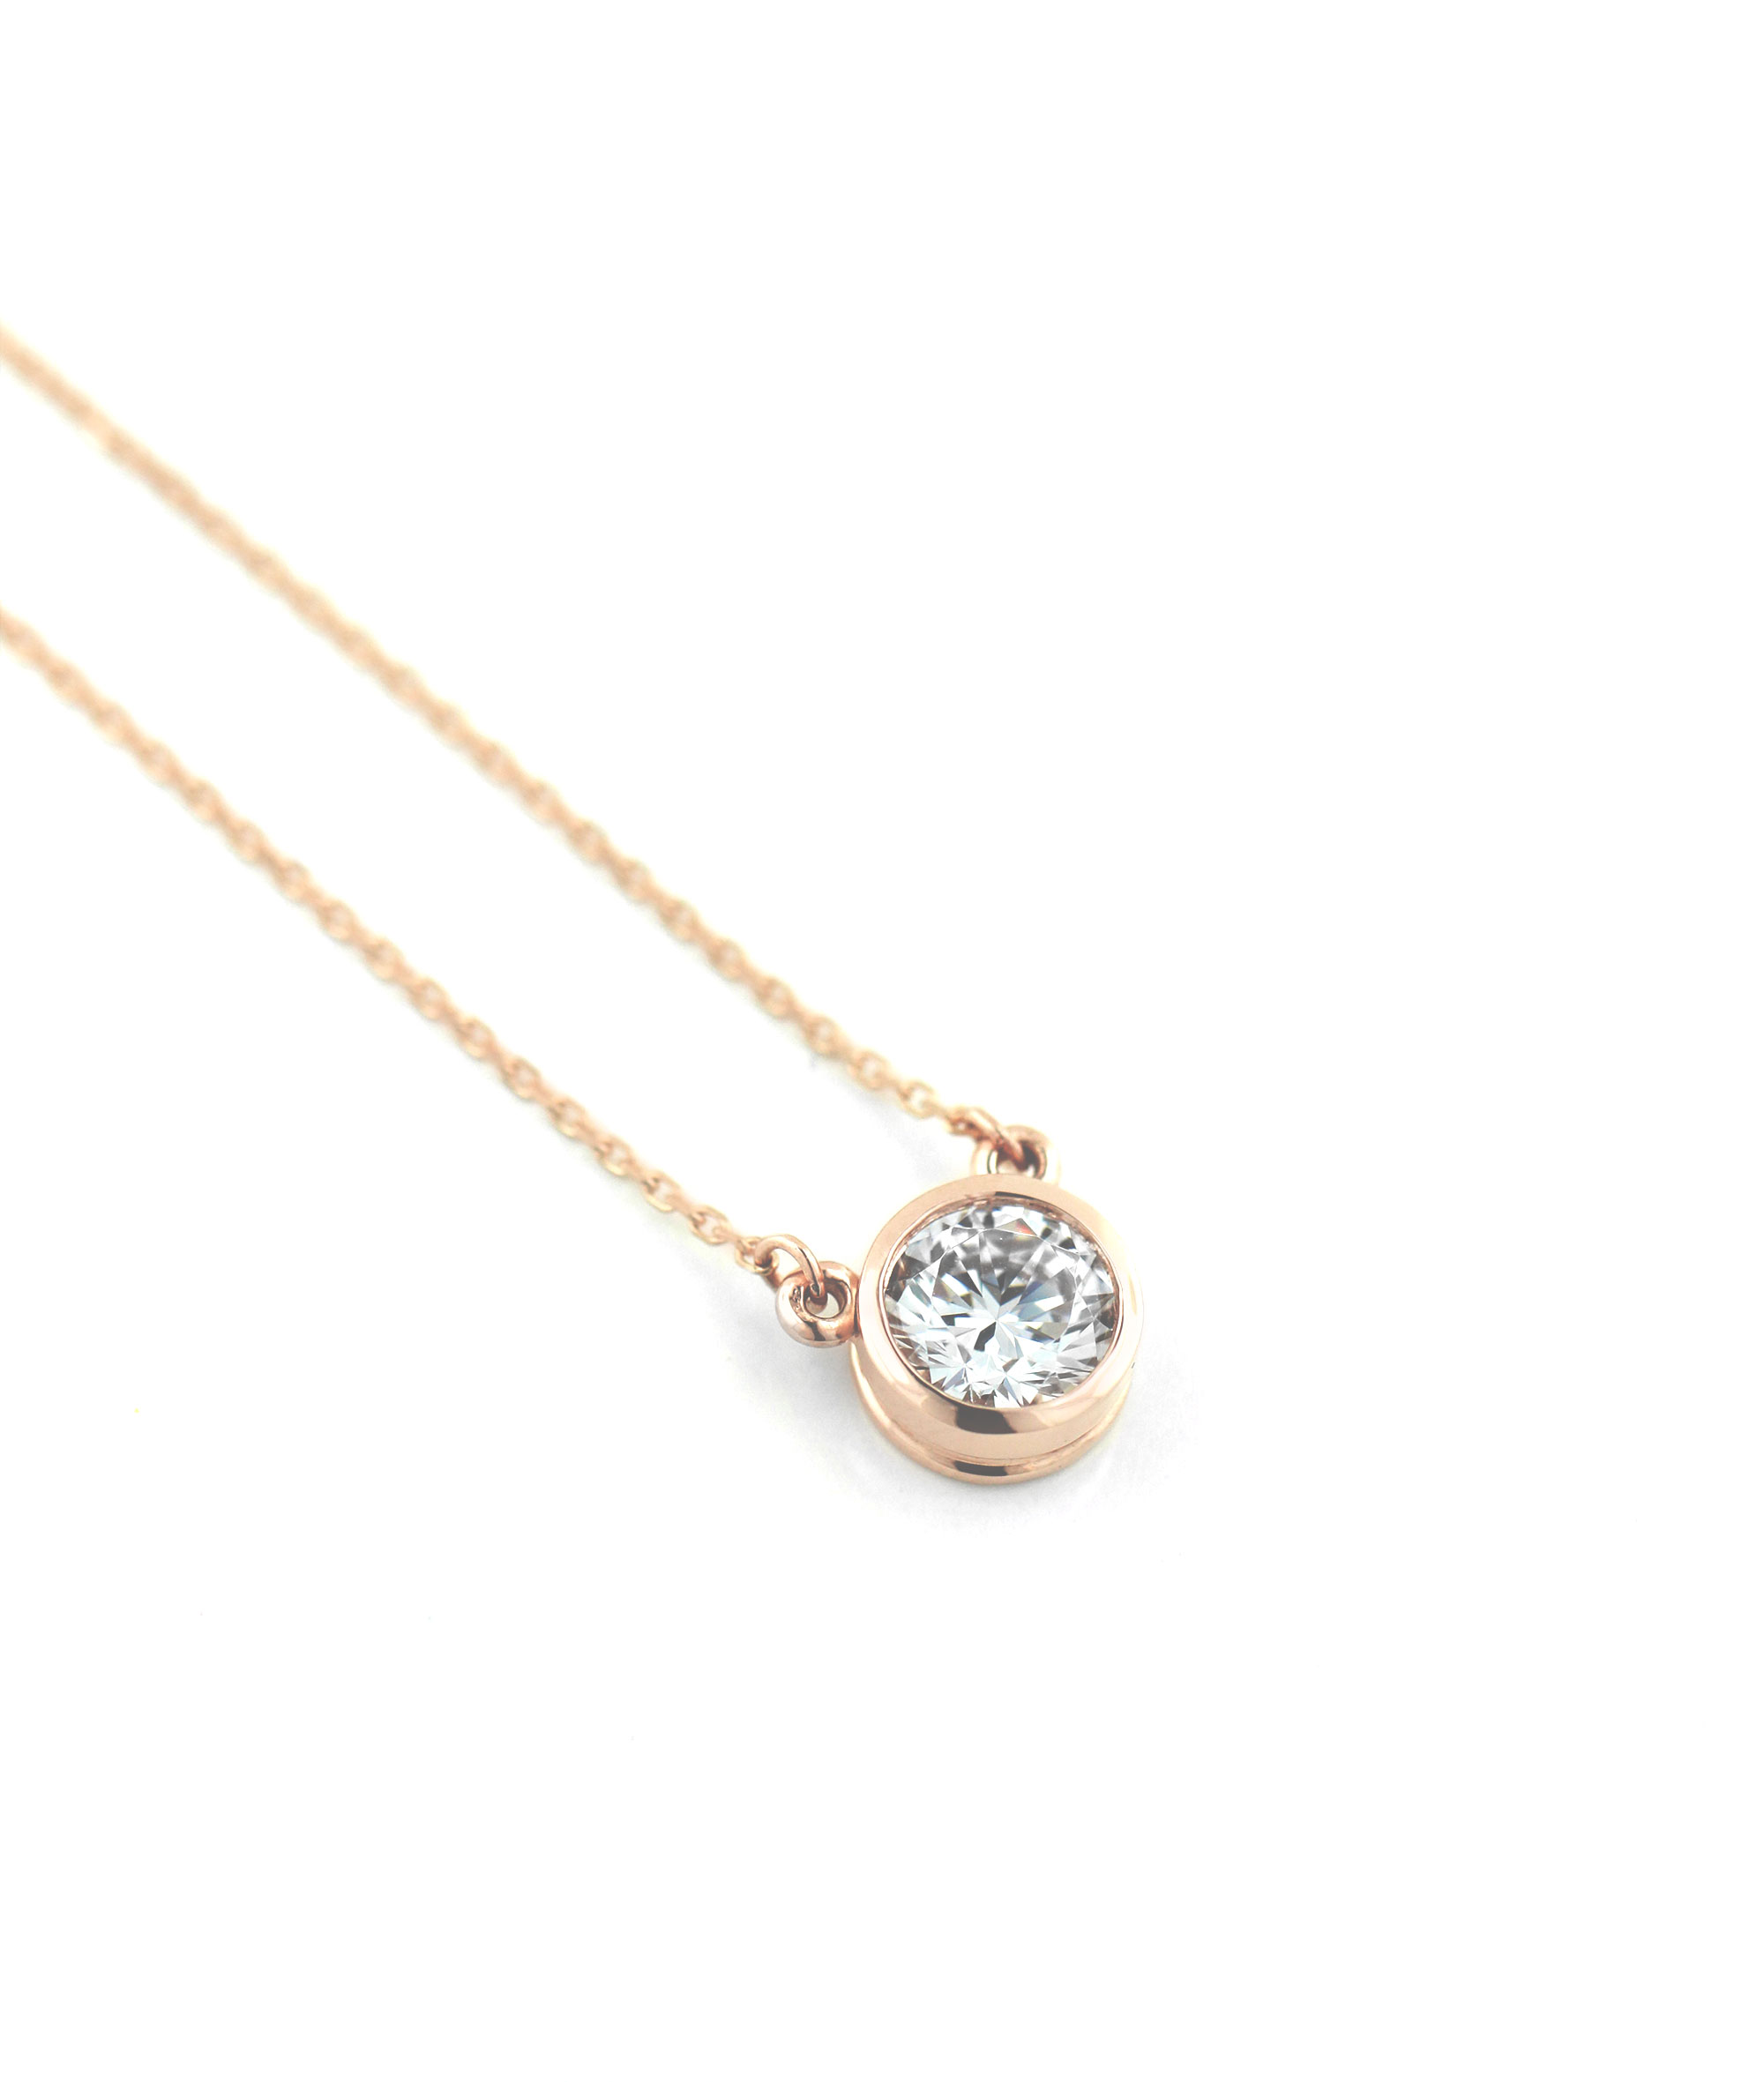 This Valentine's Day instead of Roses, Give Her Rose Gold | Rose Gold Bezel Pendant Necklace